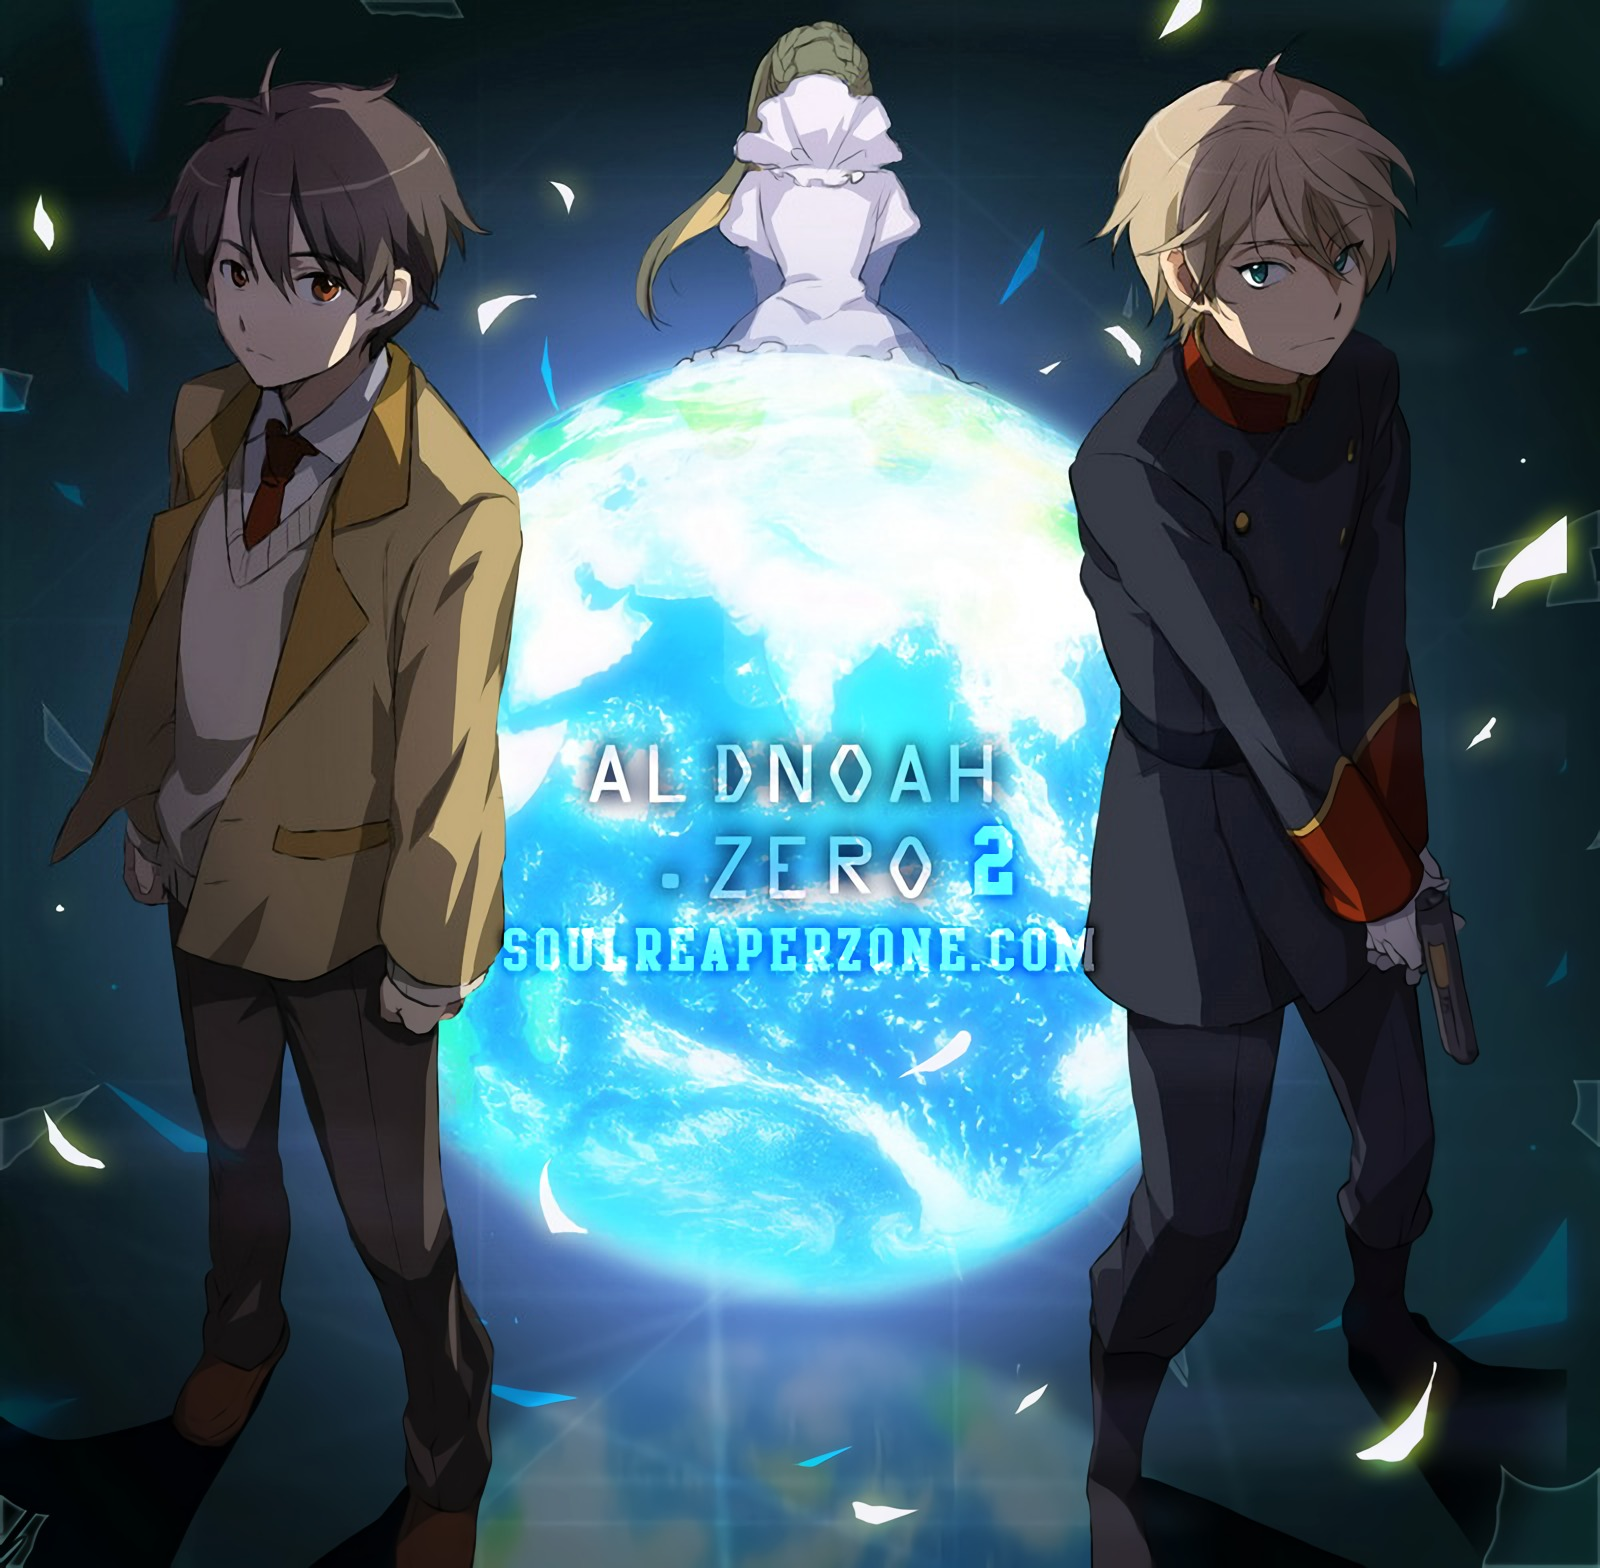 Aldnoah Zero S2 Batch Subtitle Indonesia